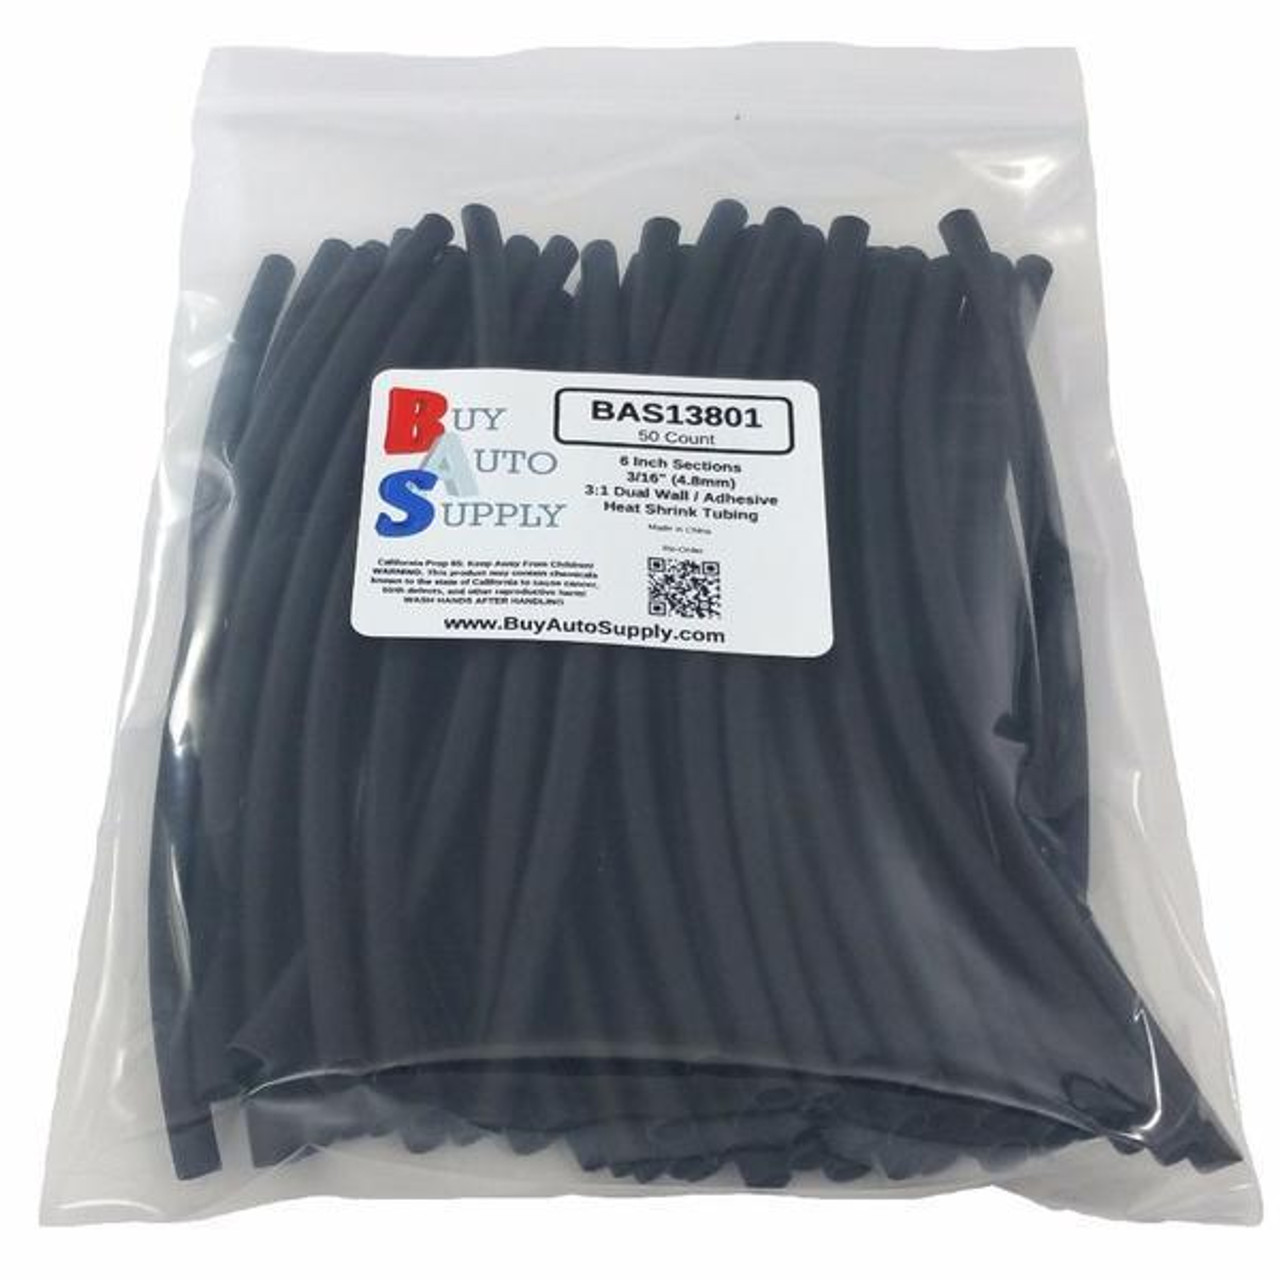 """Bag of 50 Black 3/16"""" 3:1 Dual Wall Heat Shrink Tube Adhesive Lined - 6 Inch Sections"""